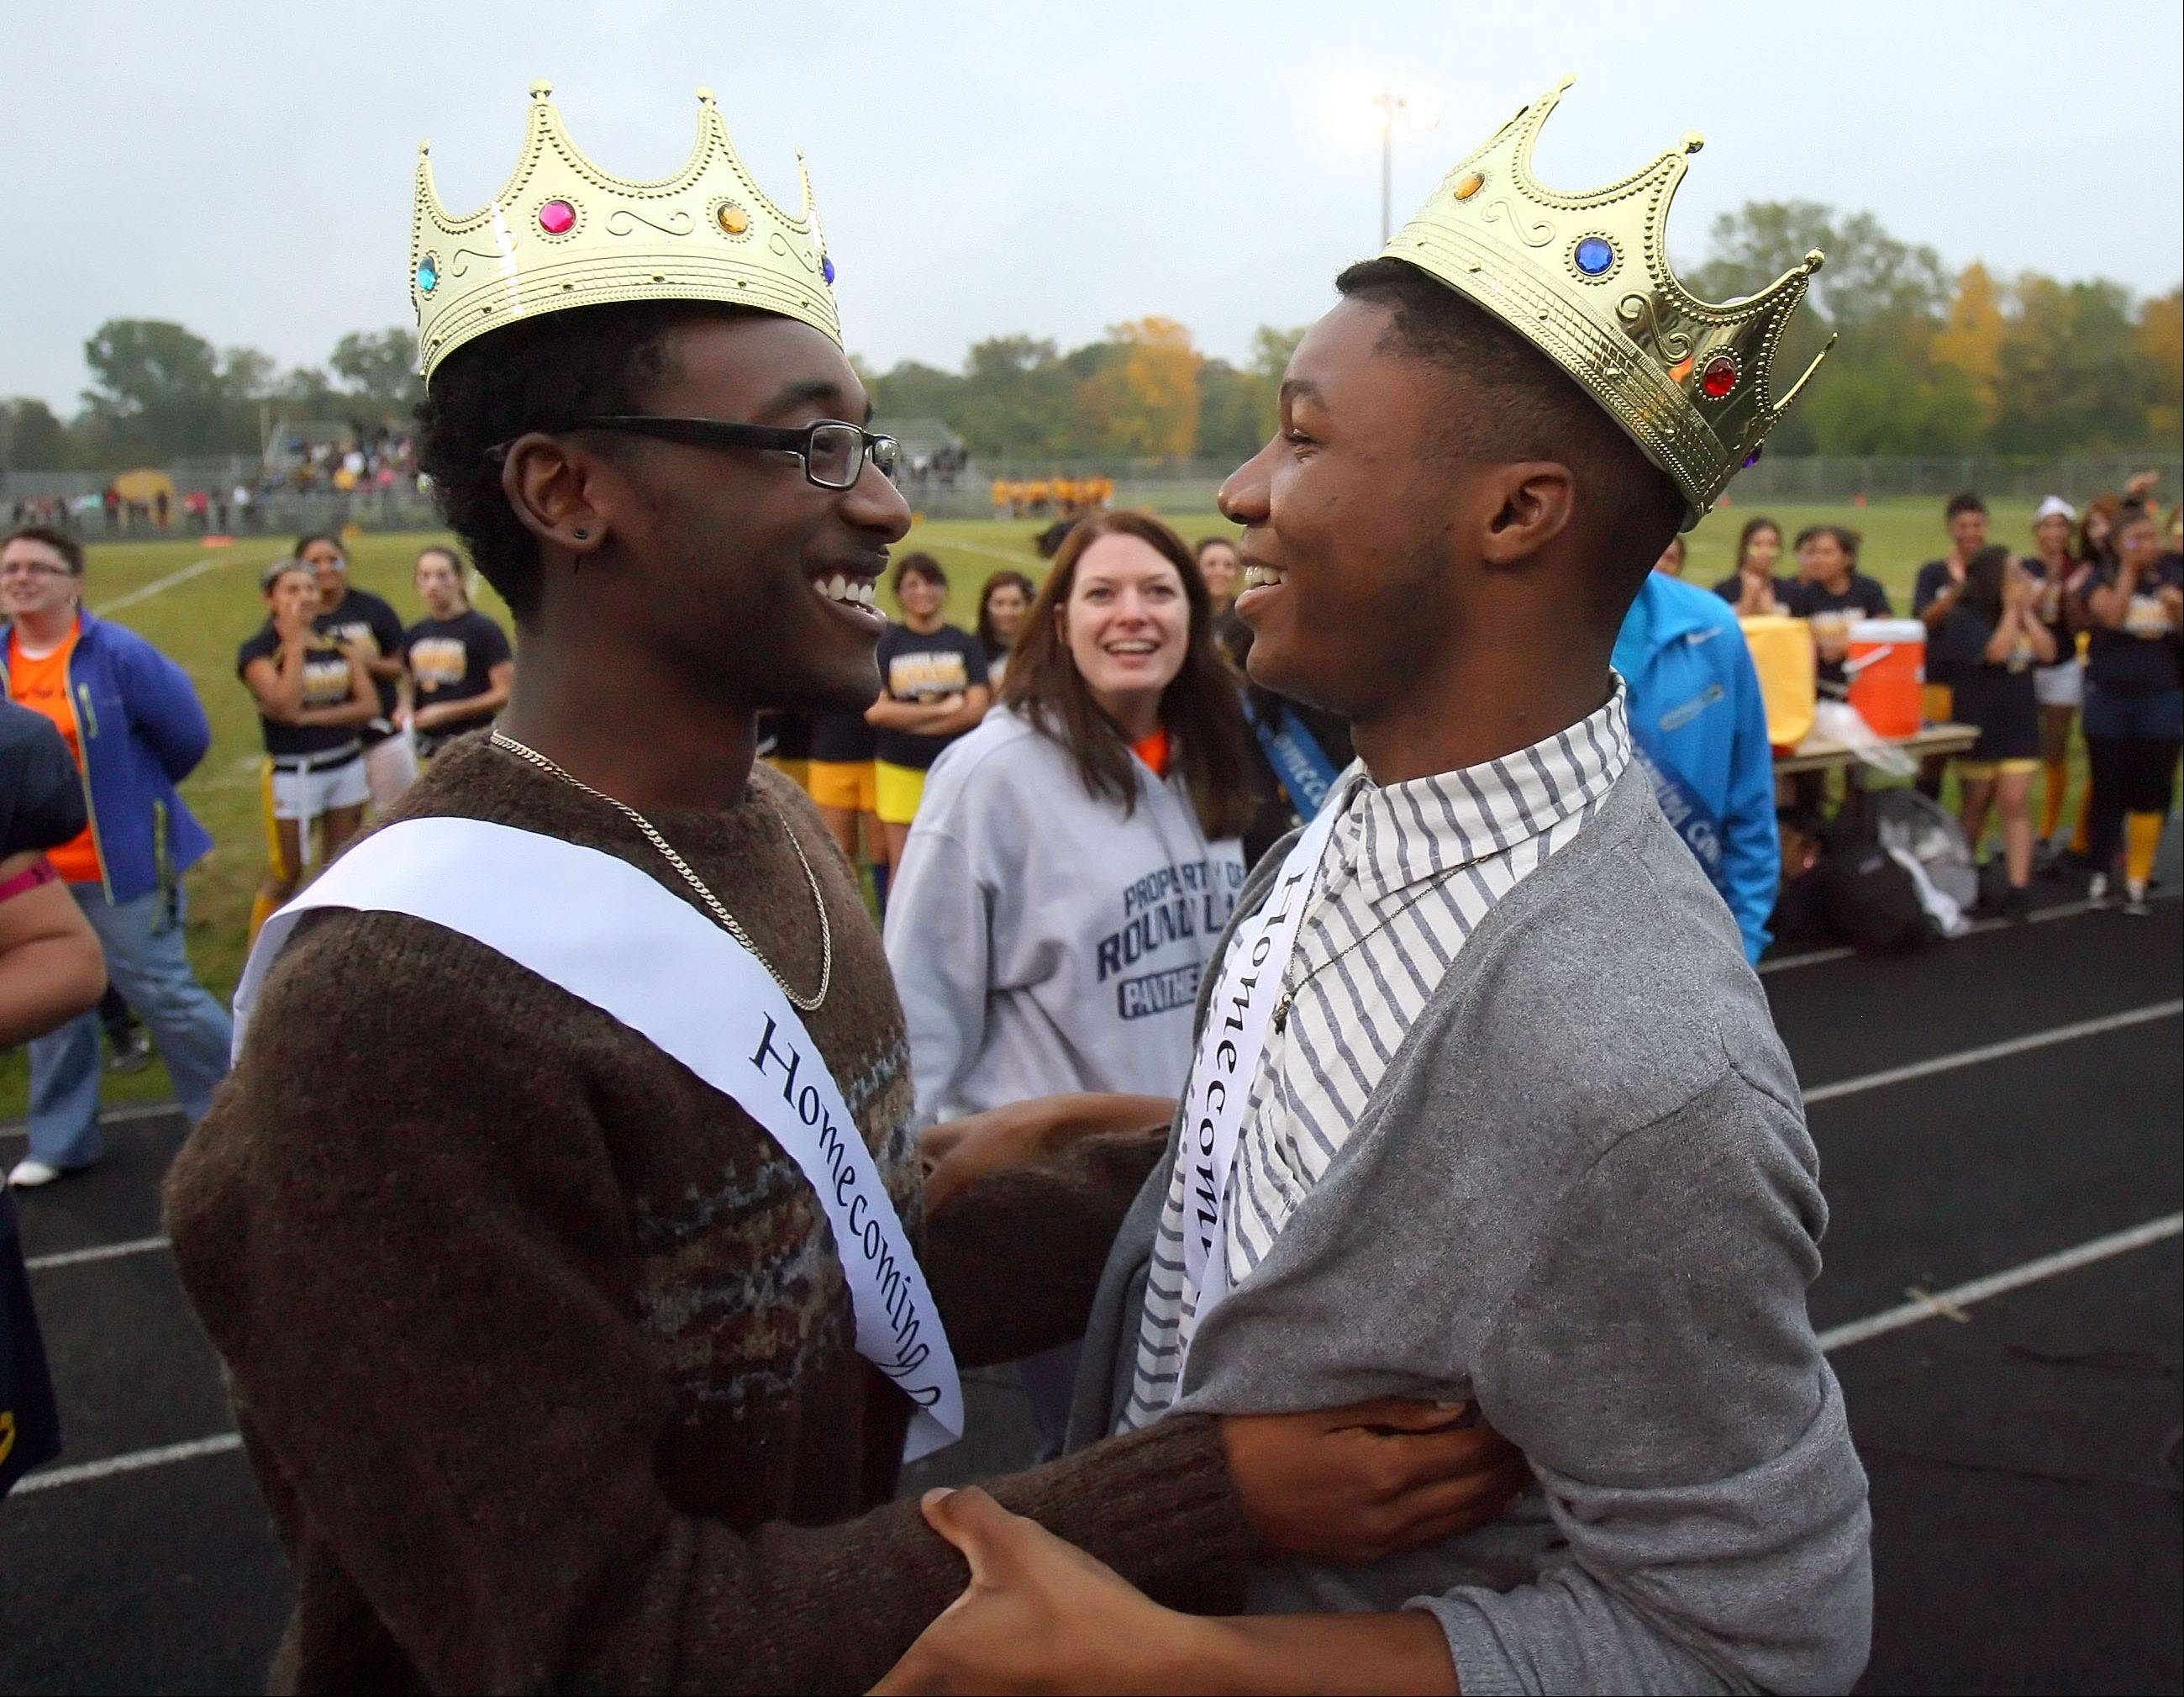 Bryant Jenkins, left, and Bougest Sutton hug after being crowned as Round Lake High School's first same-sex homecoming king and queen during halftime of the Powder-Puff Extravaganza.